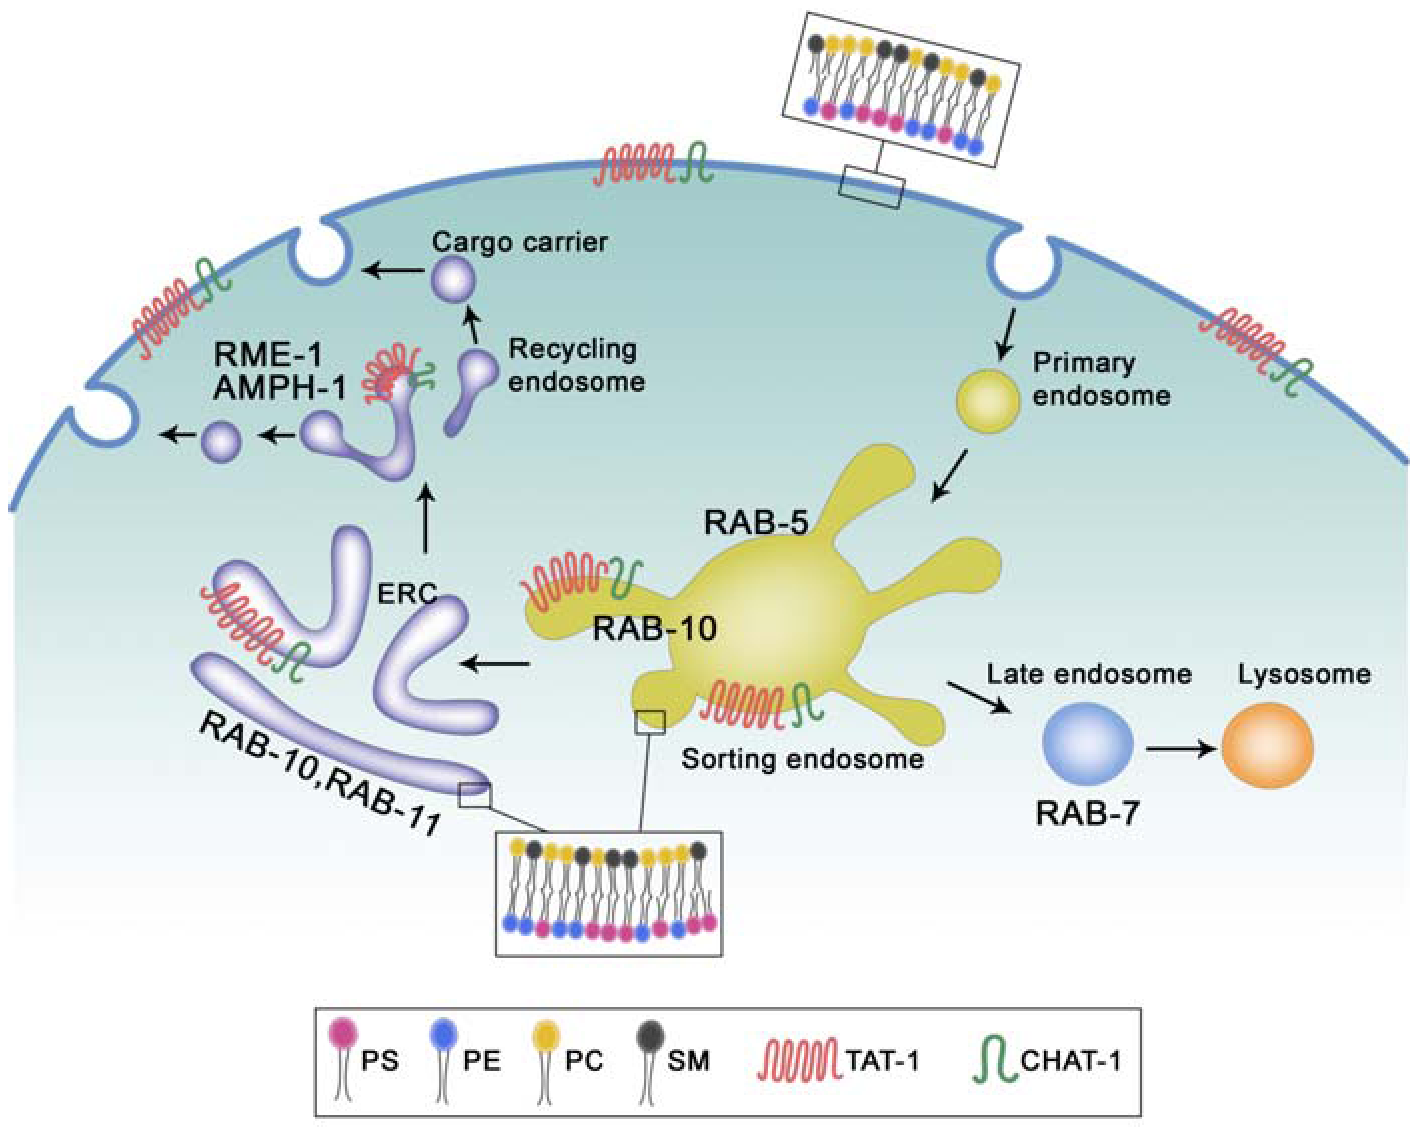 Proposed functions of TAT-1/CHAT-1 in endocytic sorting and recycling.